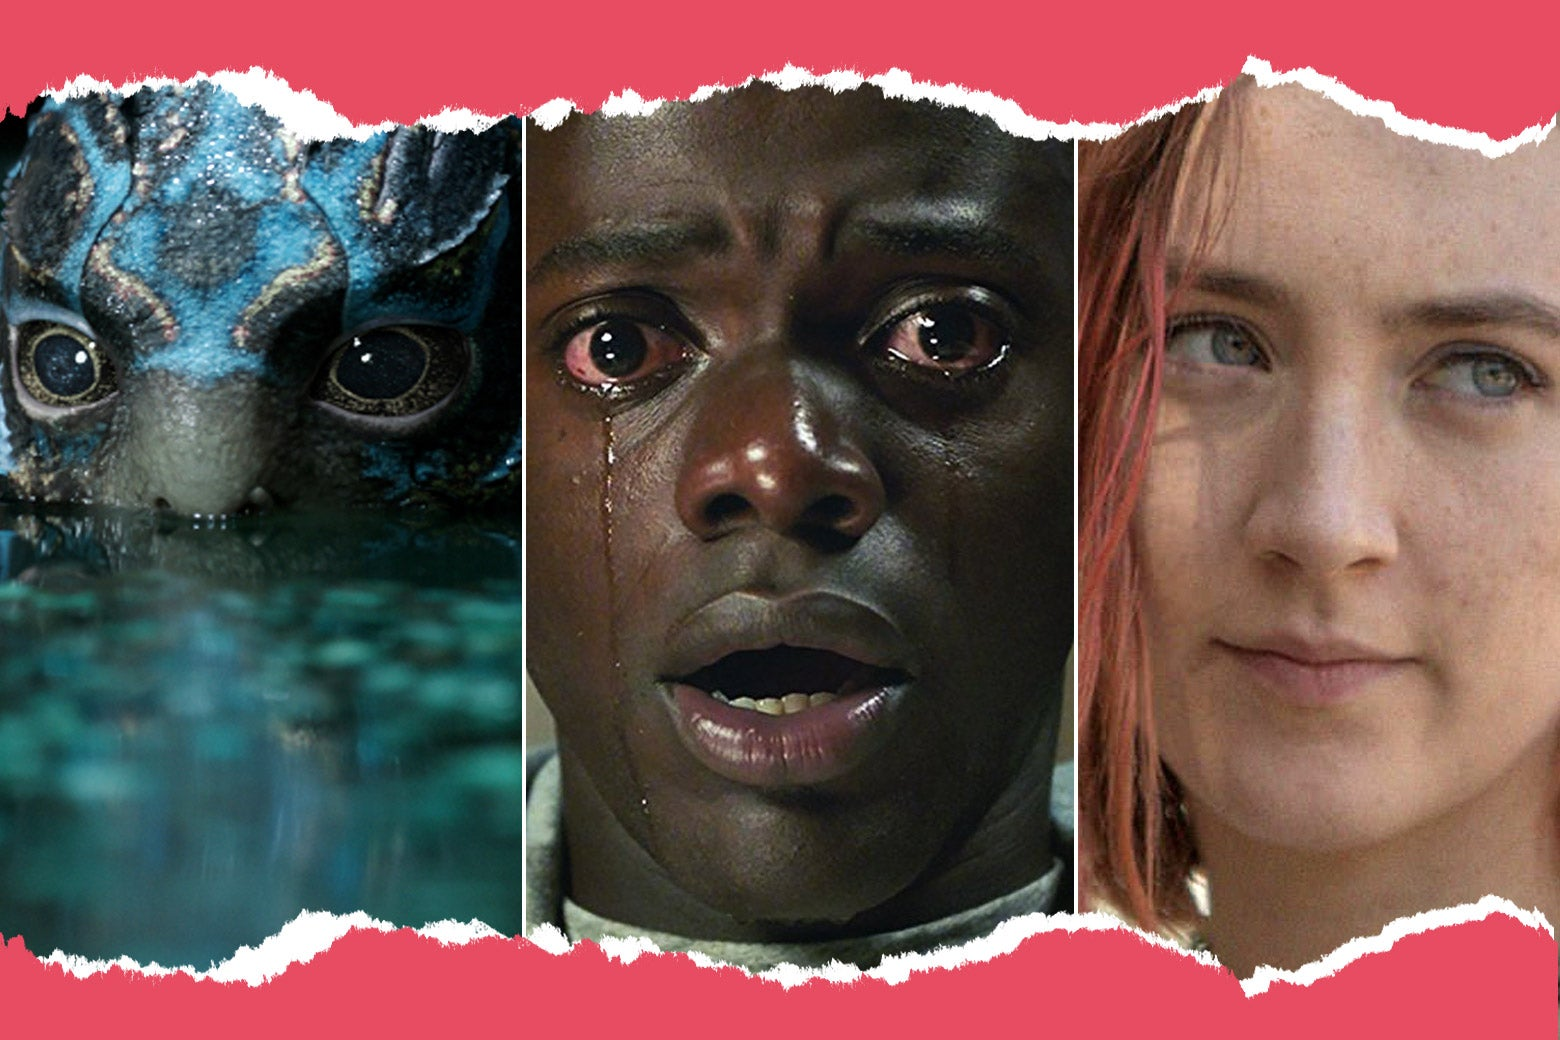 Stills from The Shape of Water, Get Out, and Ladybird.